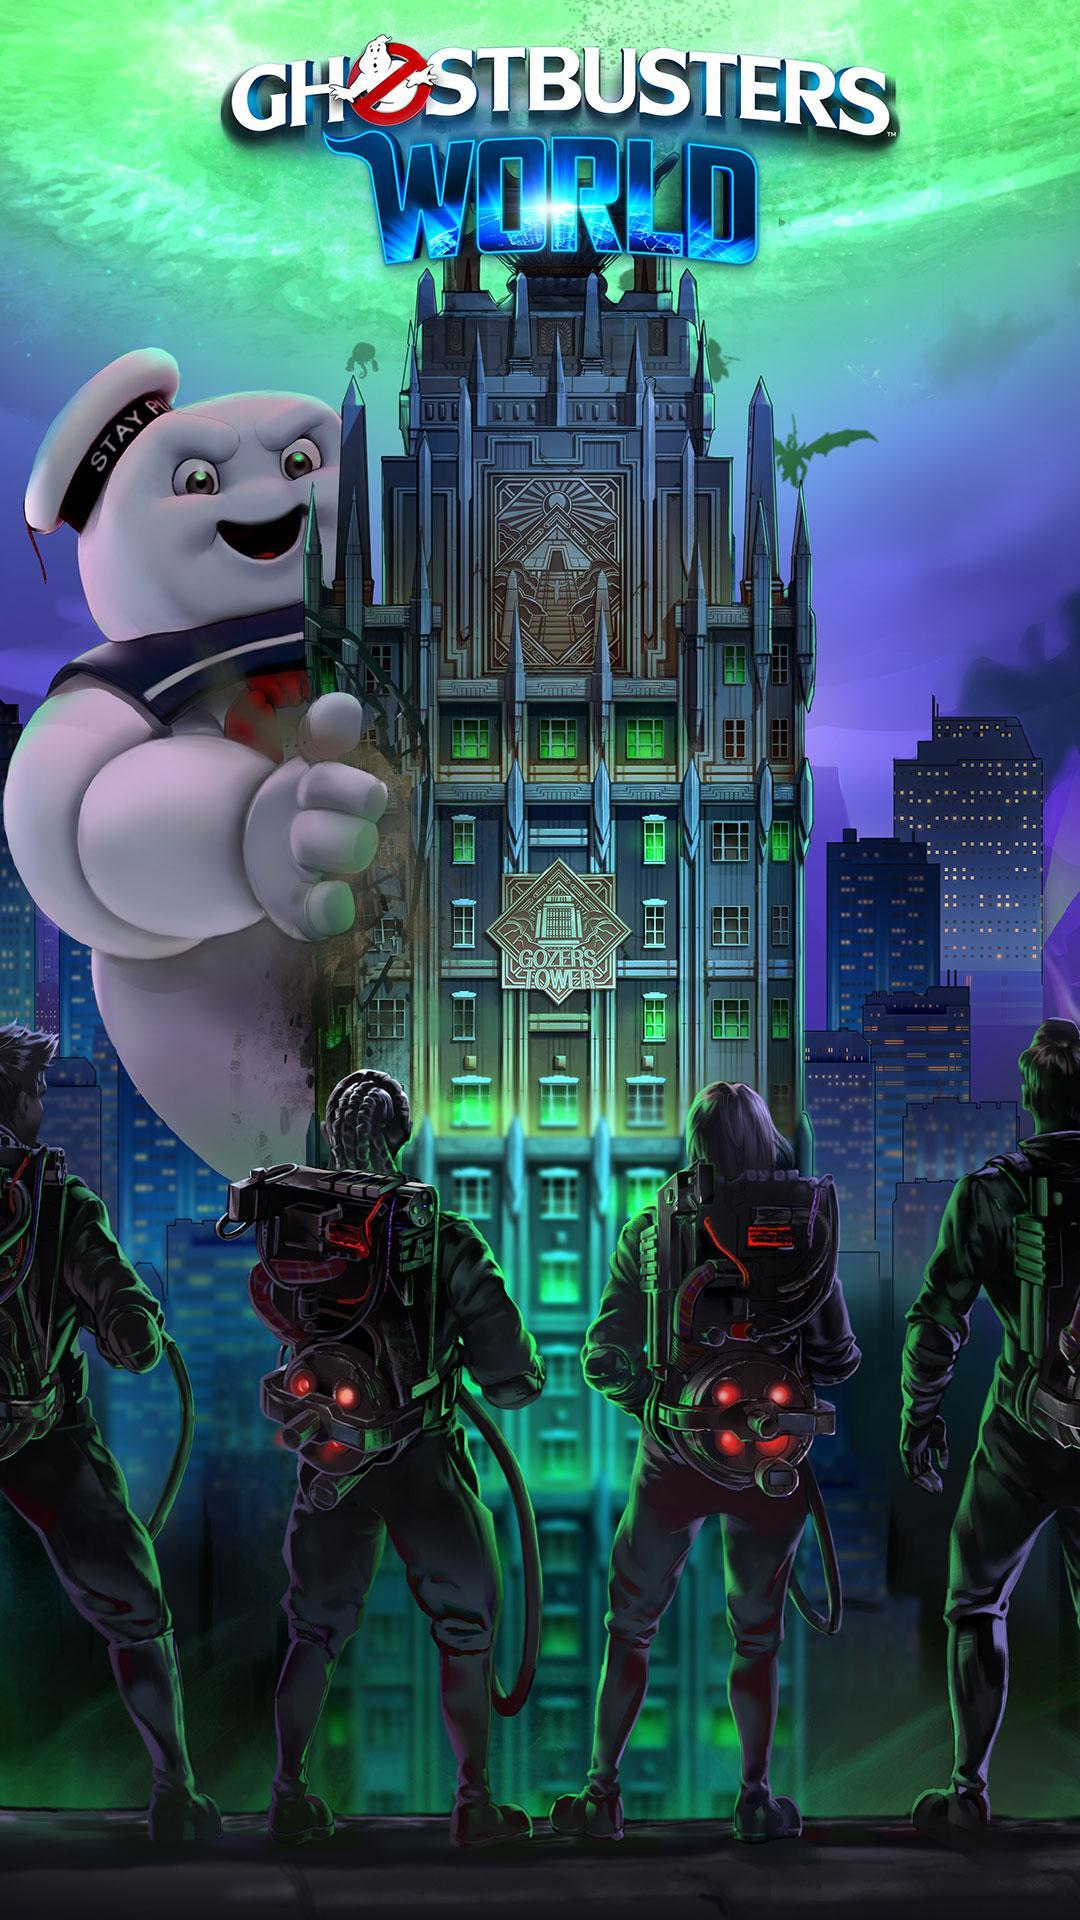 Ghostbusters World 1.16.2 Screenshot 17